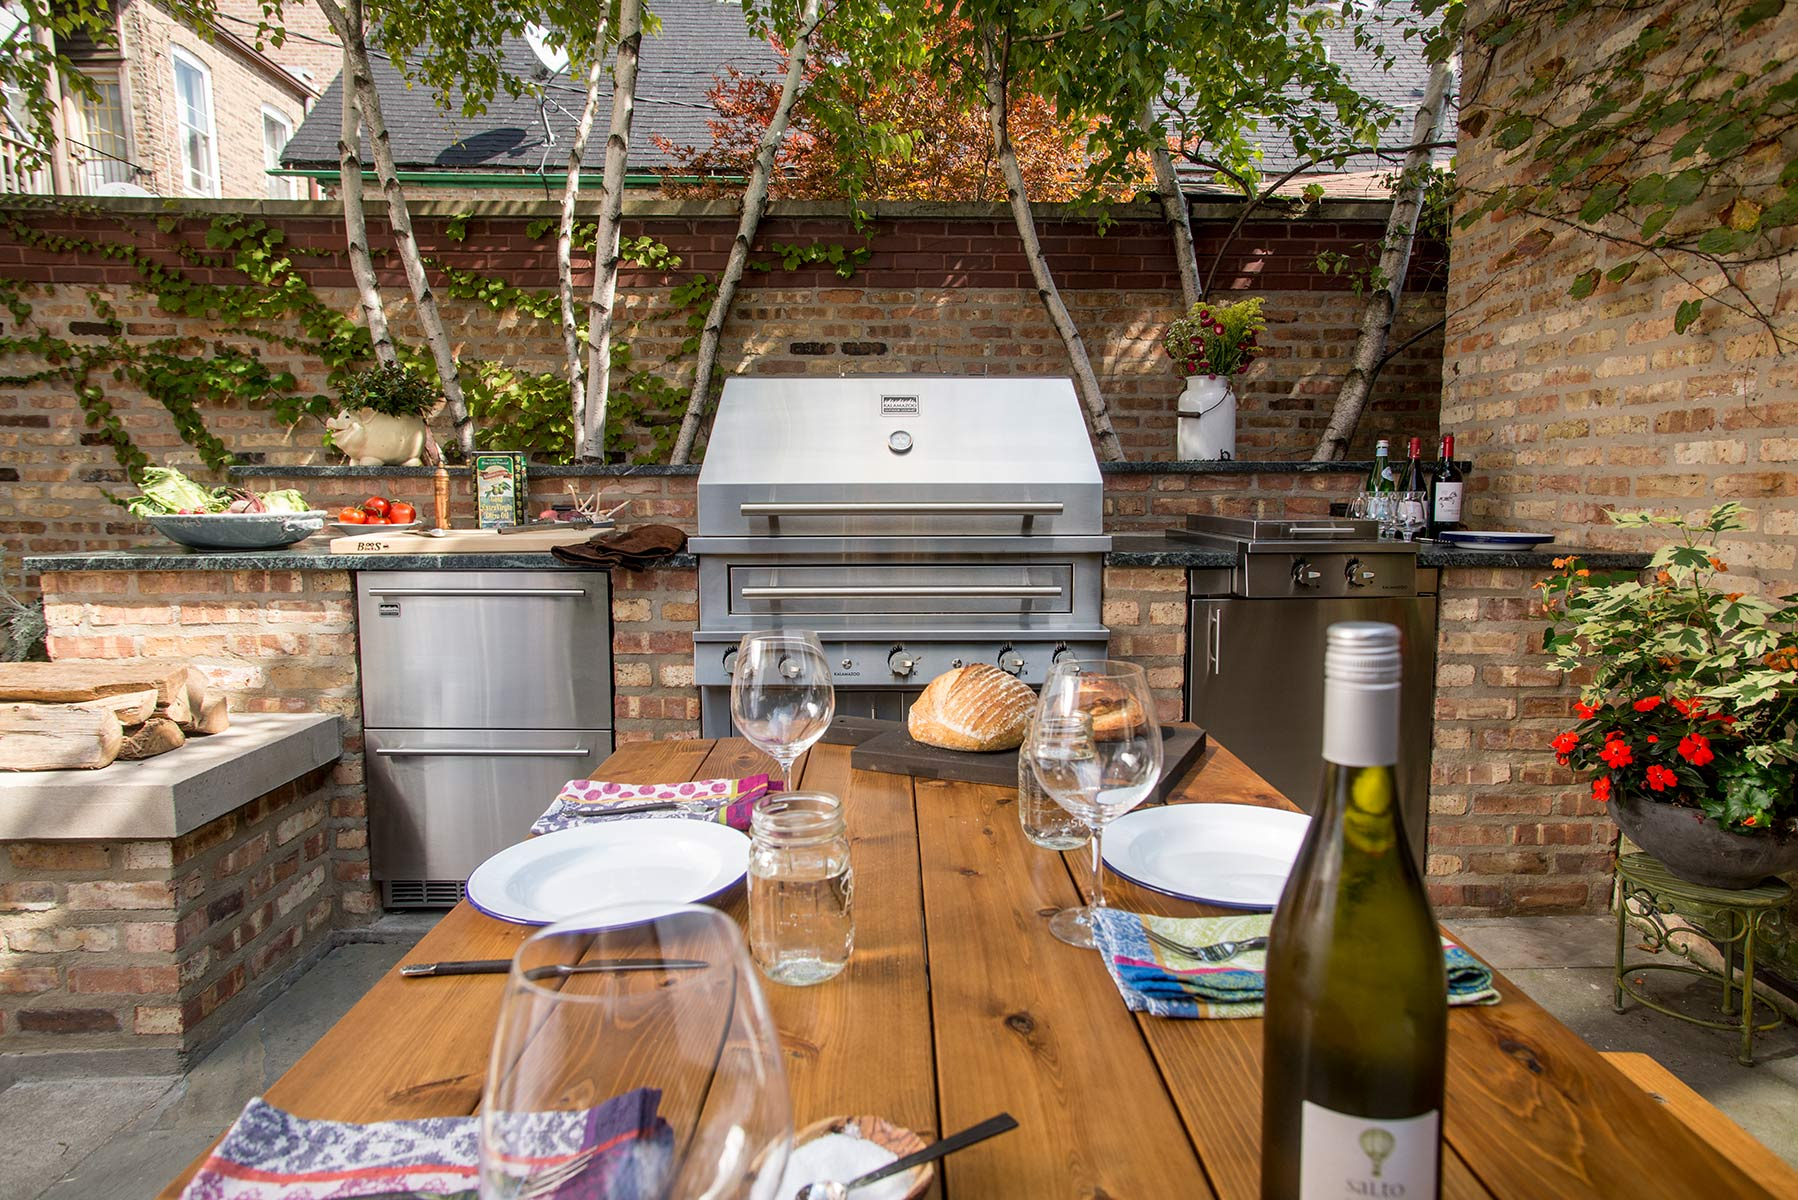 Outdoor Küche Backstein 20 Beautiful Outdoor Kitchen Ideas 101 Recycled Crafts